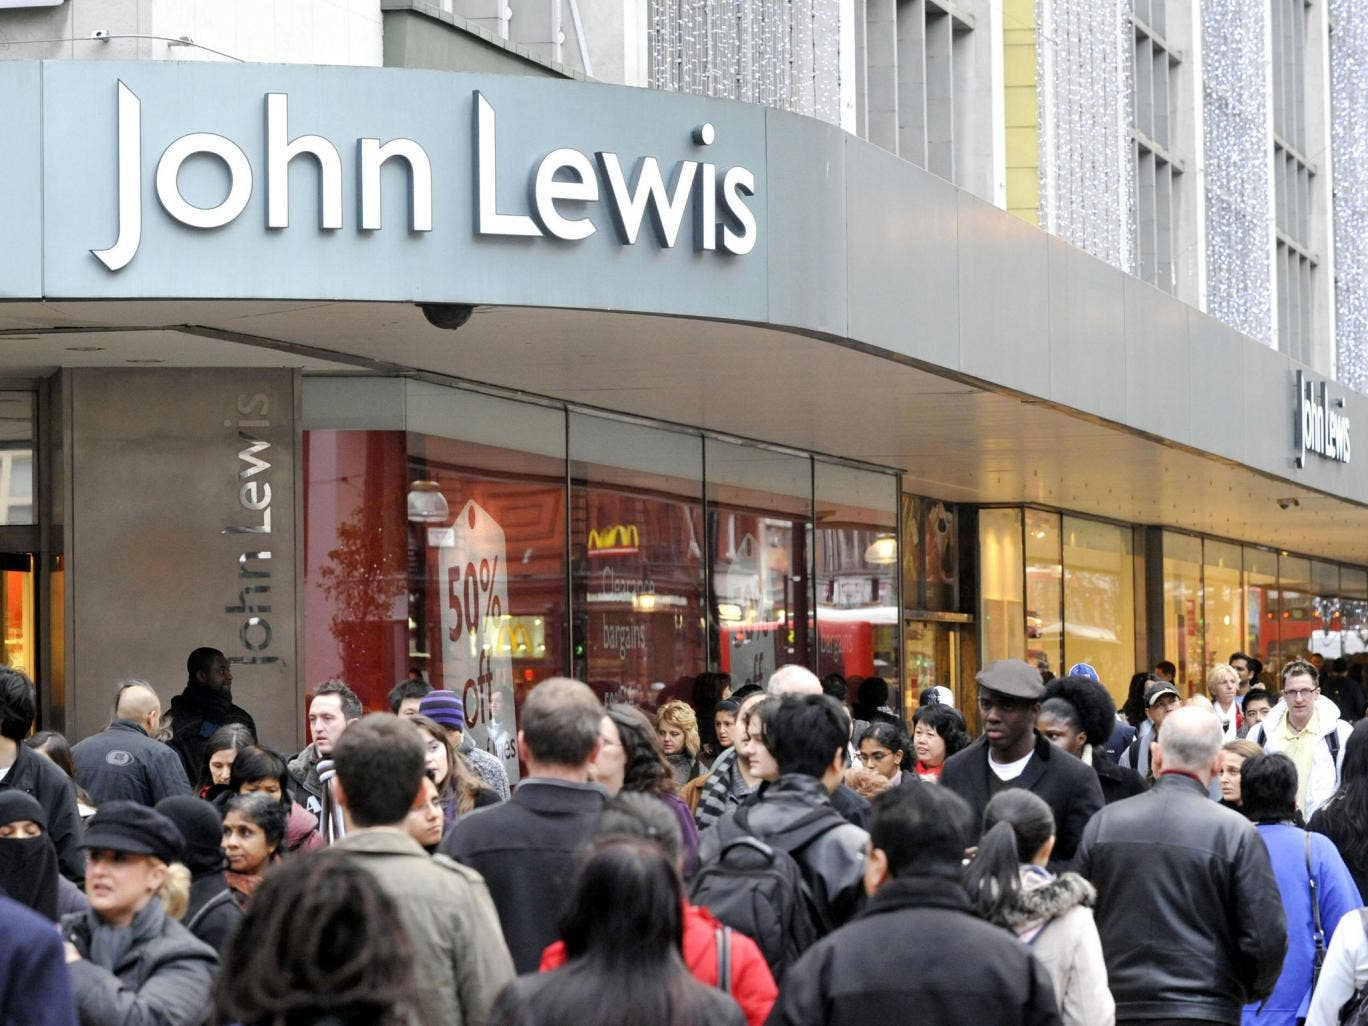 Janet Street-Porter: 'There needs to be a new model for the high street which doesn't compete with online shopping and out-of-town superstores, but offers something completely different'